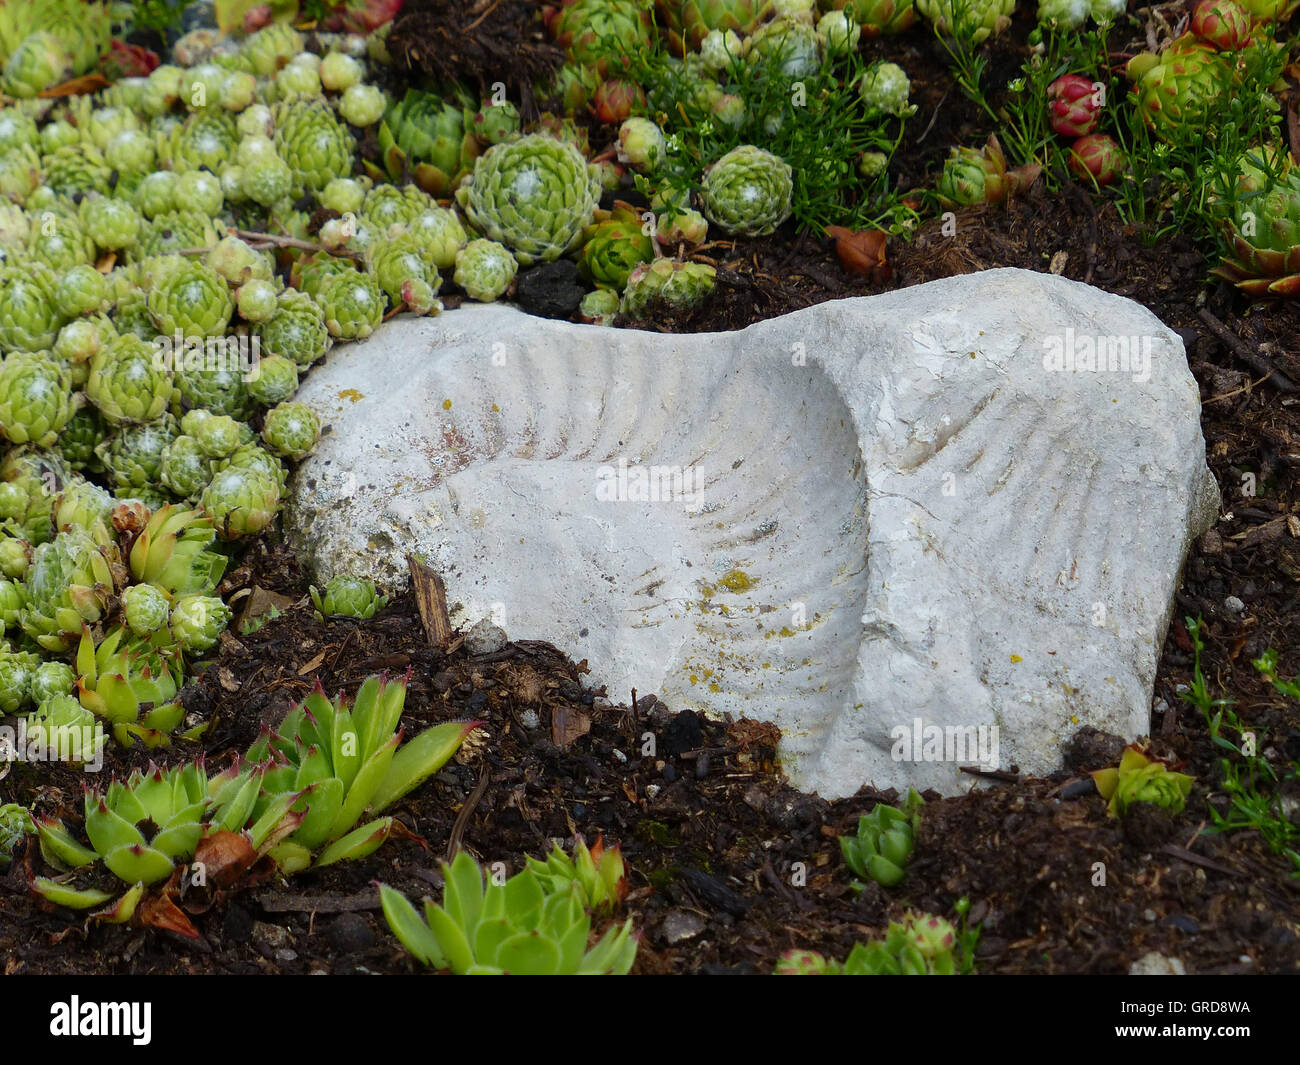 Succulents And Fossilized Mollusk In The Rock Garden - Stock Image